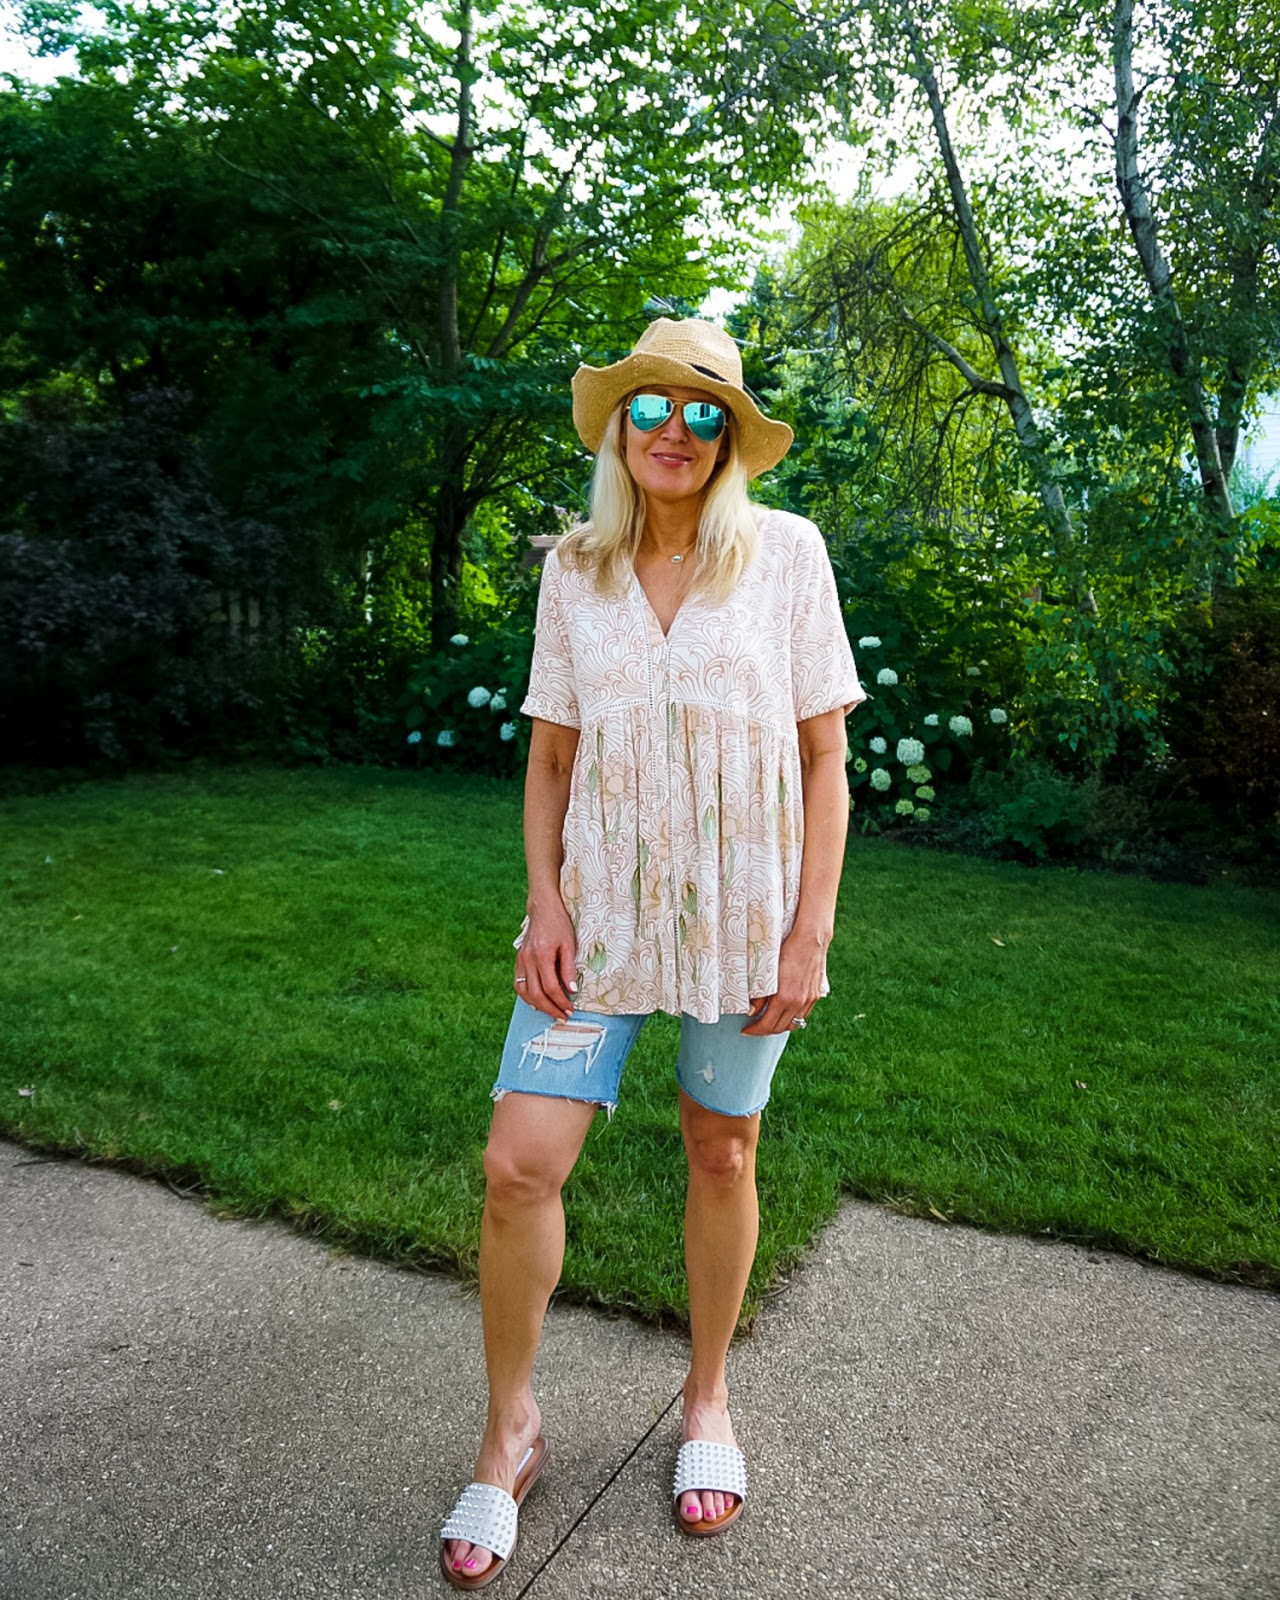 Bermuda Shorts Outfit Idea